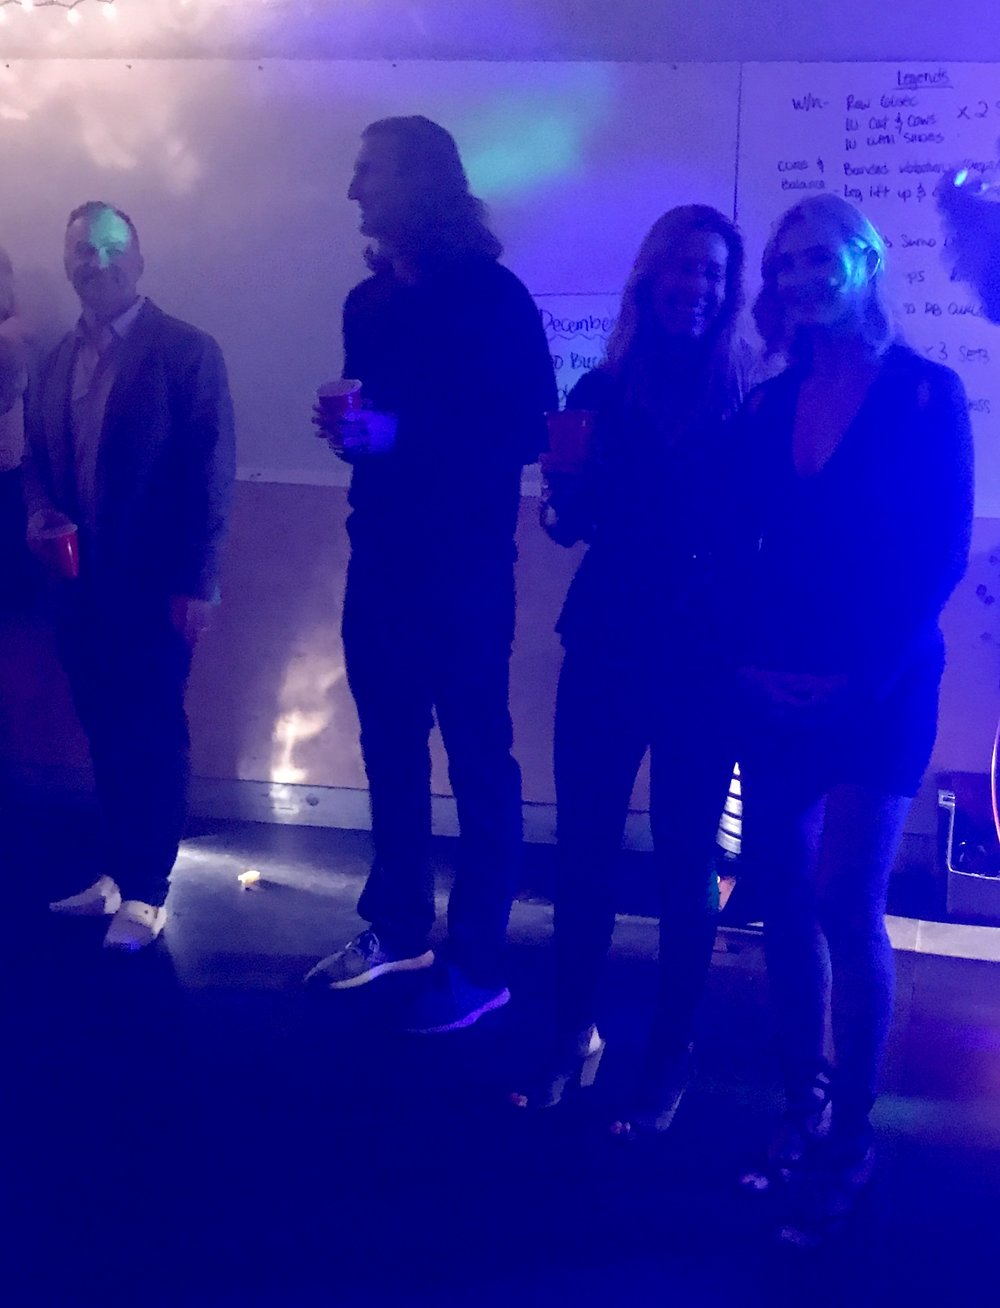 congrats to all of our Athletes of the year! - Apologies for the poor-quality photo, but this is what we got at the holiday party. Pictured here are AOTY's from San Rafael: Paul Hughes, Steph Goldsborough, and Sherri Bihn. Also pictured is Tom Fischer, ATOY from Mill Valley. Not pictured are our other Athletes of the Year, who have some explaining to do as to why they weren't at the party: Julie Knox from Mill Valley and Jacqui Miranda, Bob Kelly, and Jimmy Miranda from Corte Madera. AOTY honors go to long-time members who embody the spirit of our community and support our efforts in various ways, year-round.